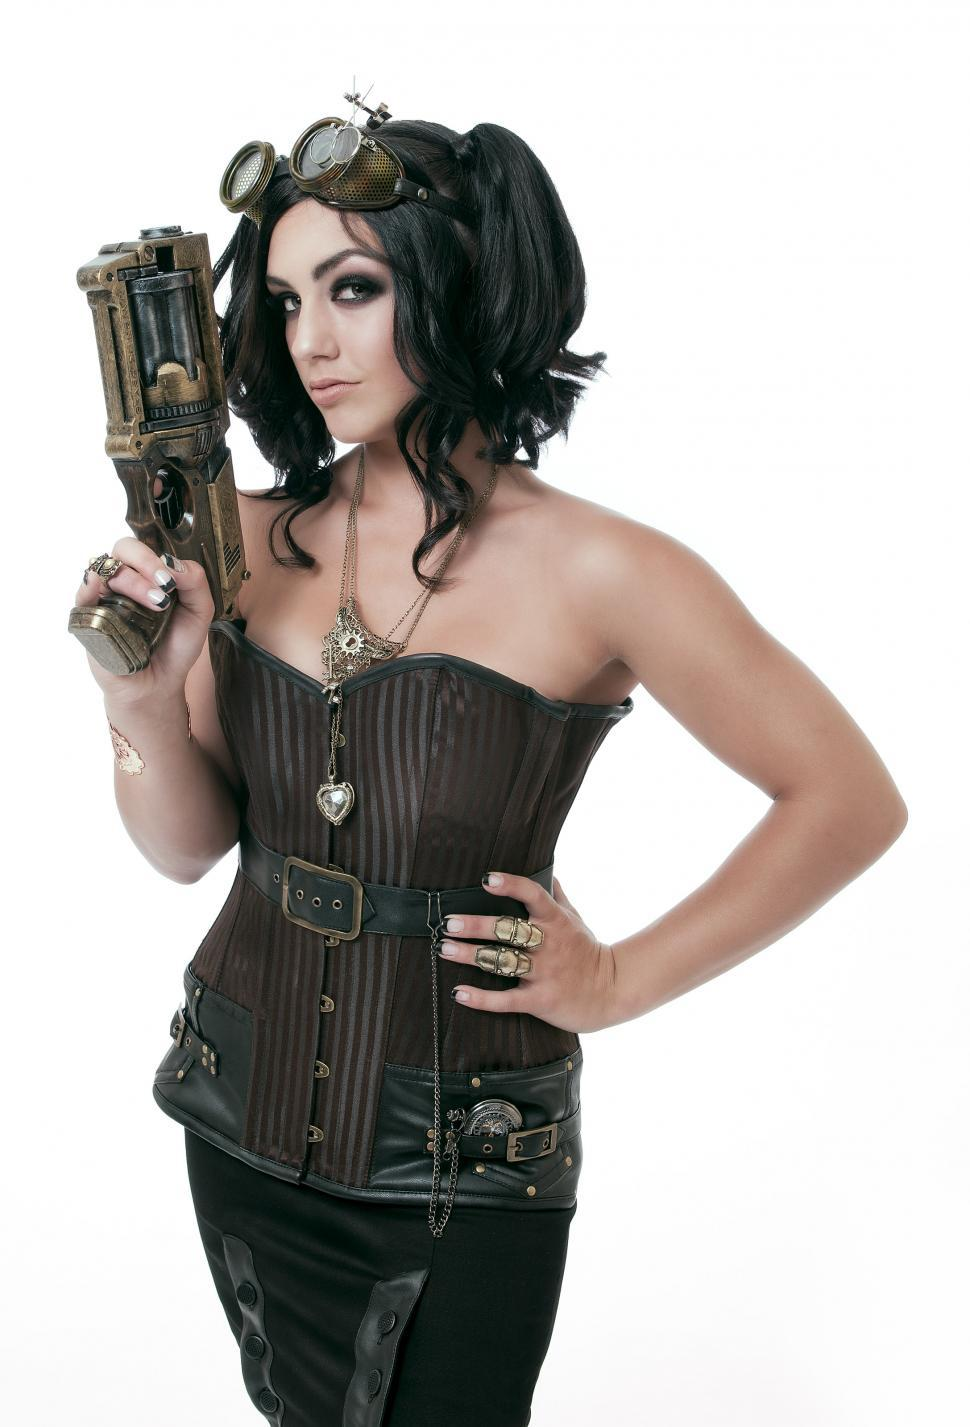 Download Free Stock HD Photo of Dressed up woman with steampunk gun Online